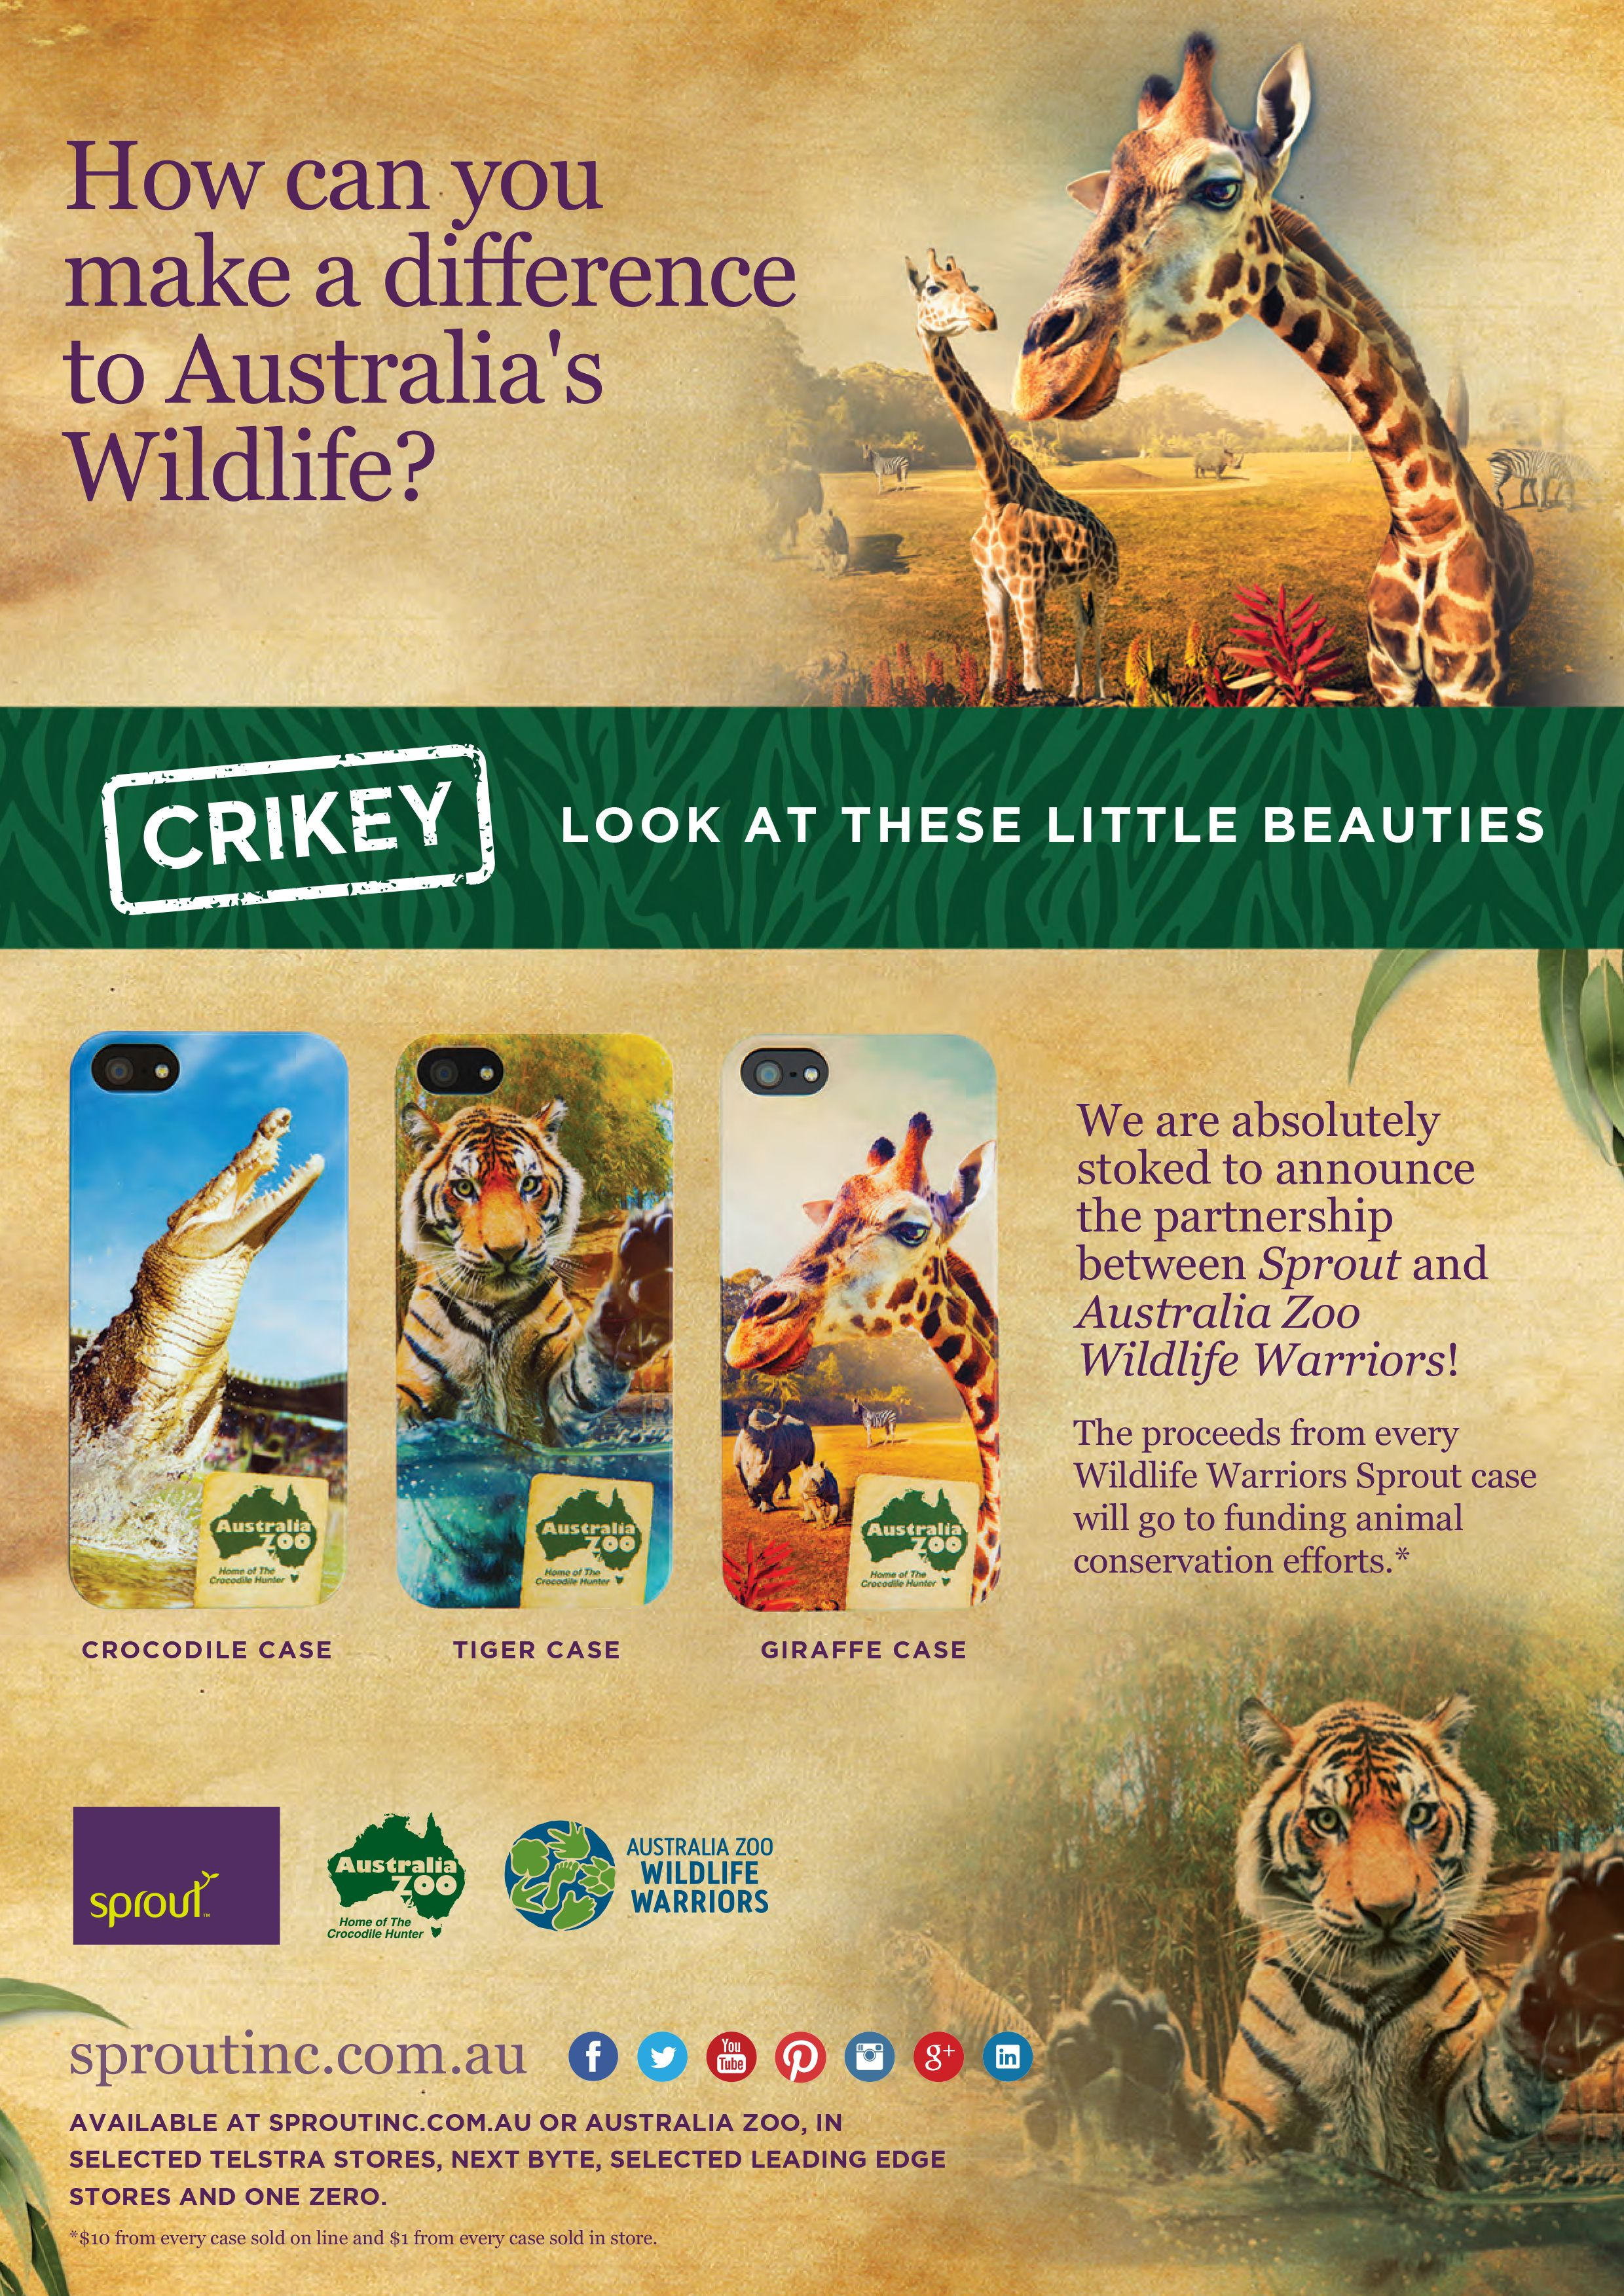 Our Latest Print Ad For Sprout To Feature In The Australia Zoo Crikey Magazine Ifactory Ifactorydigital Print Print Print Ads Digital Digital Marketing